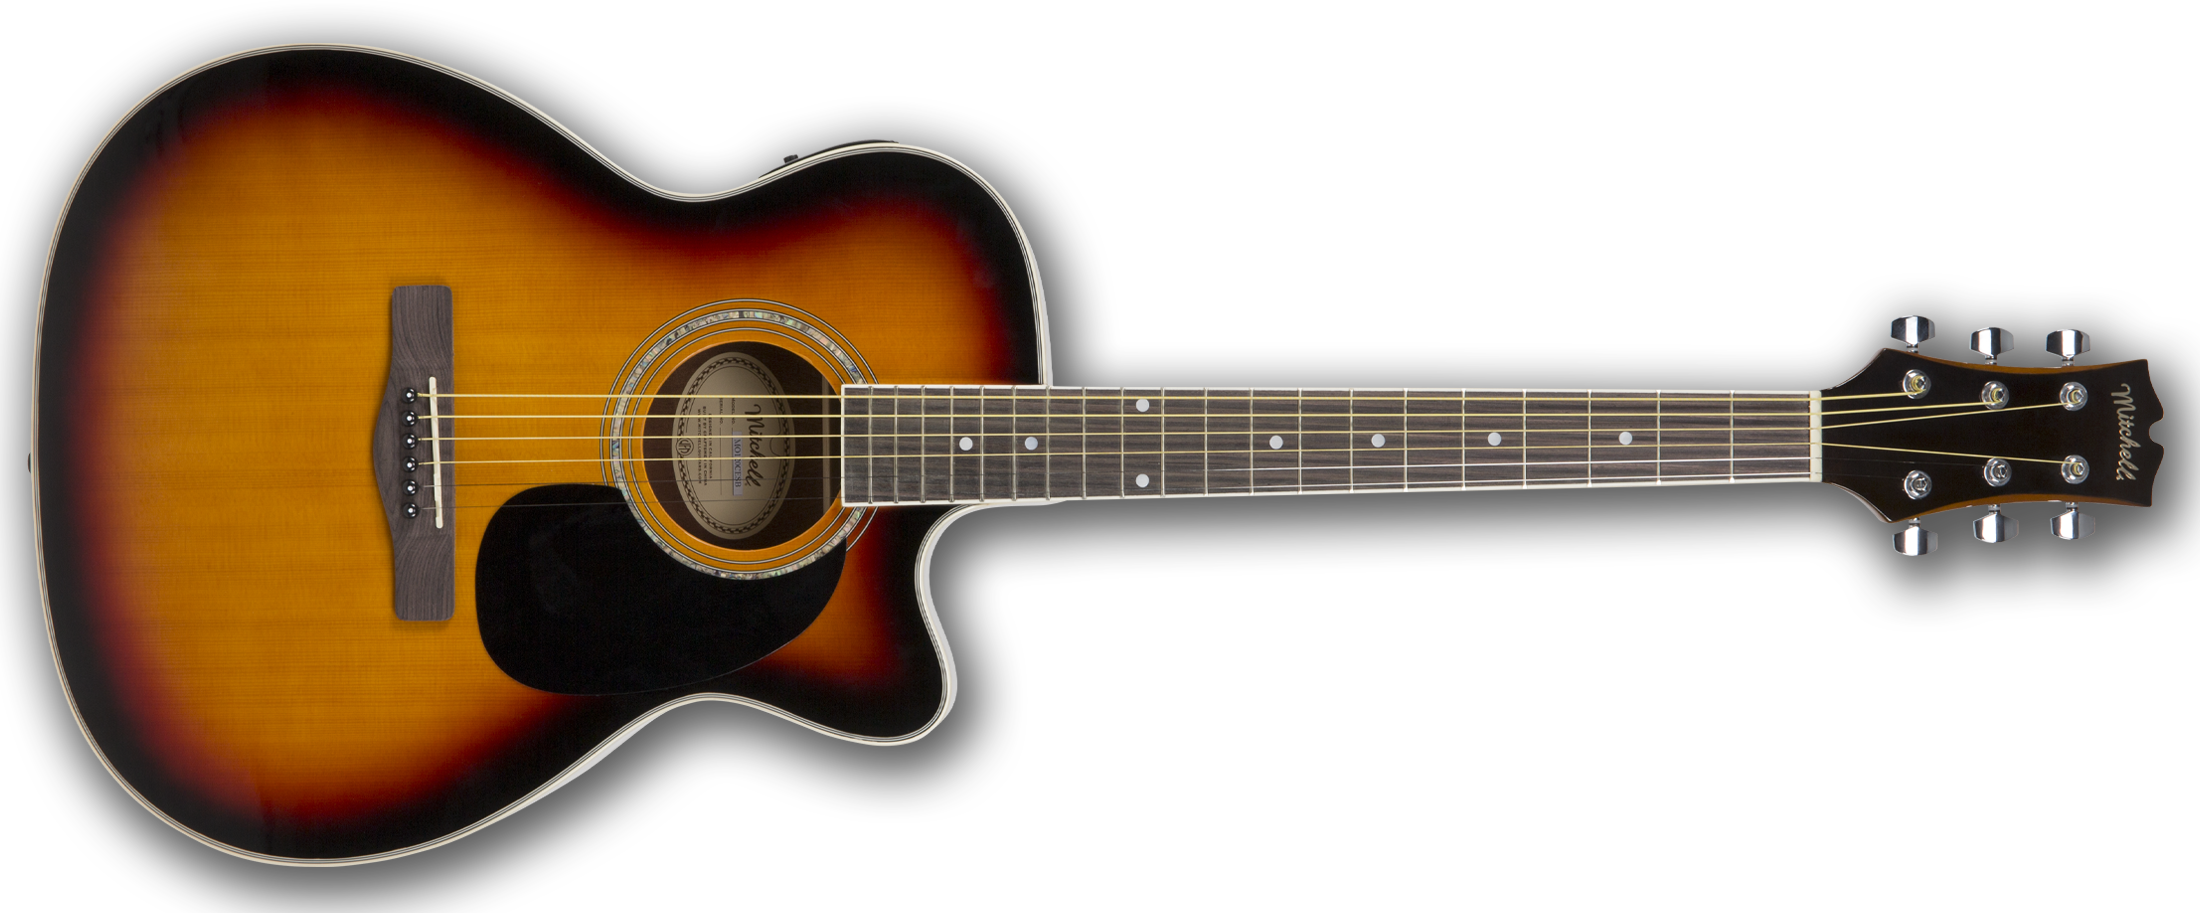 Mitchell O120CESB Cutaway Acoustic-Electric Guitar